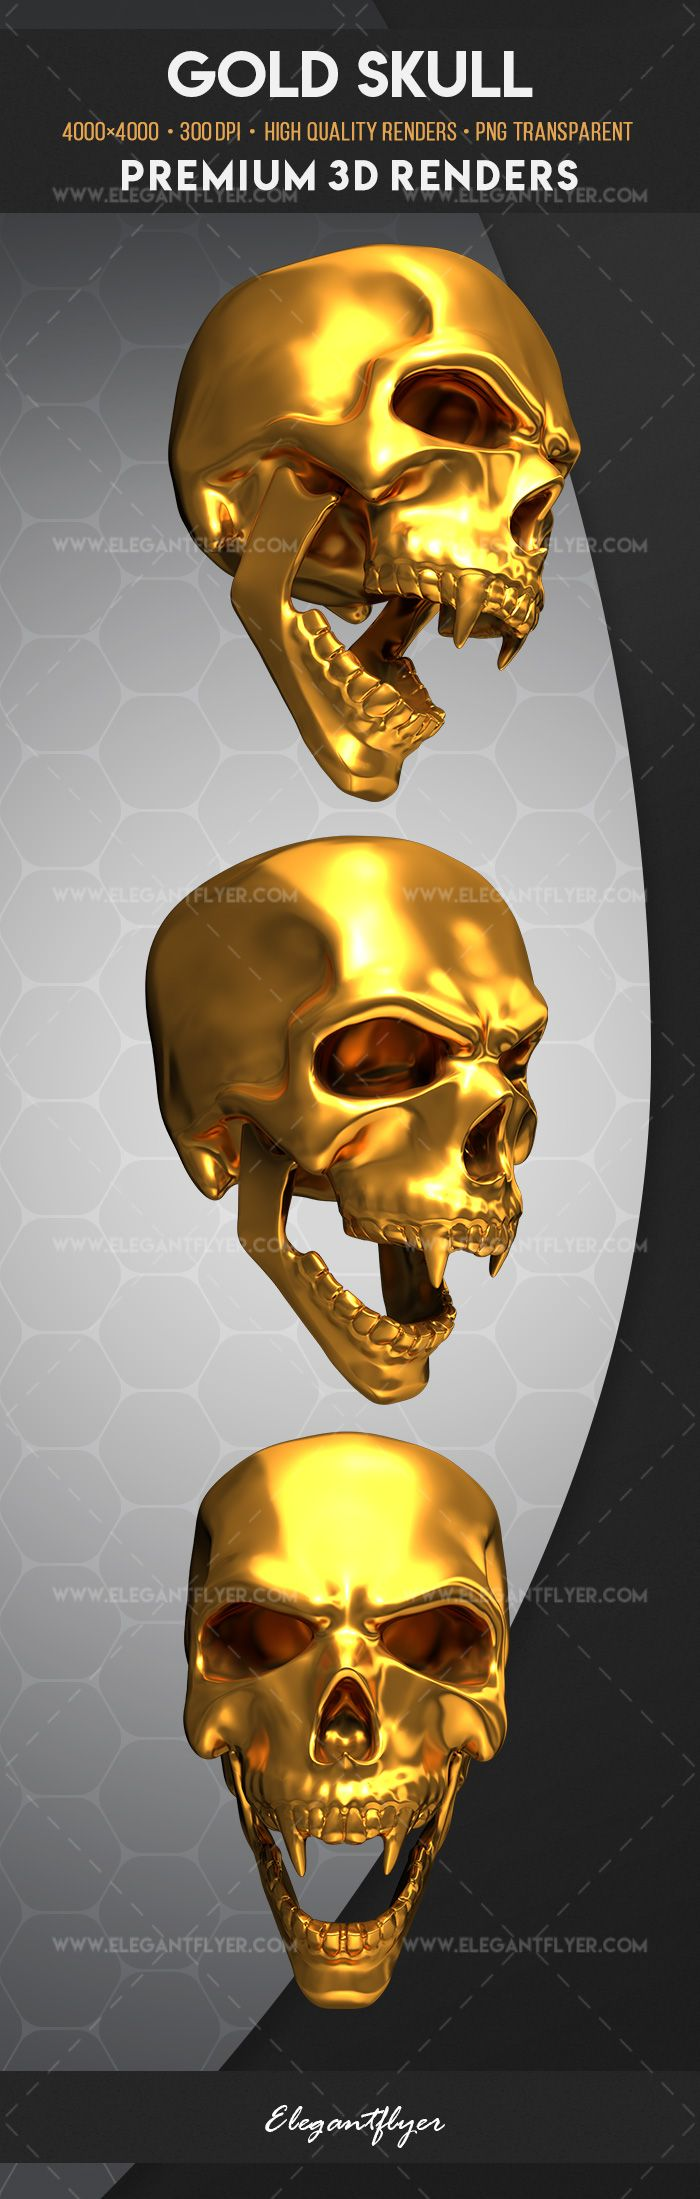 gold skull premium 3d render templates by elegantflyer. Black Bedroom Furniture Sets. Home Design Ideas